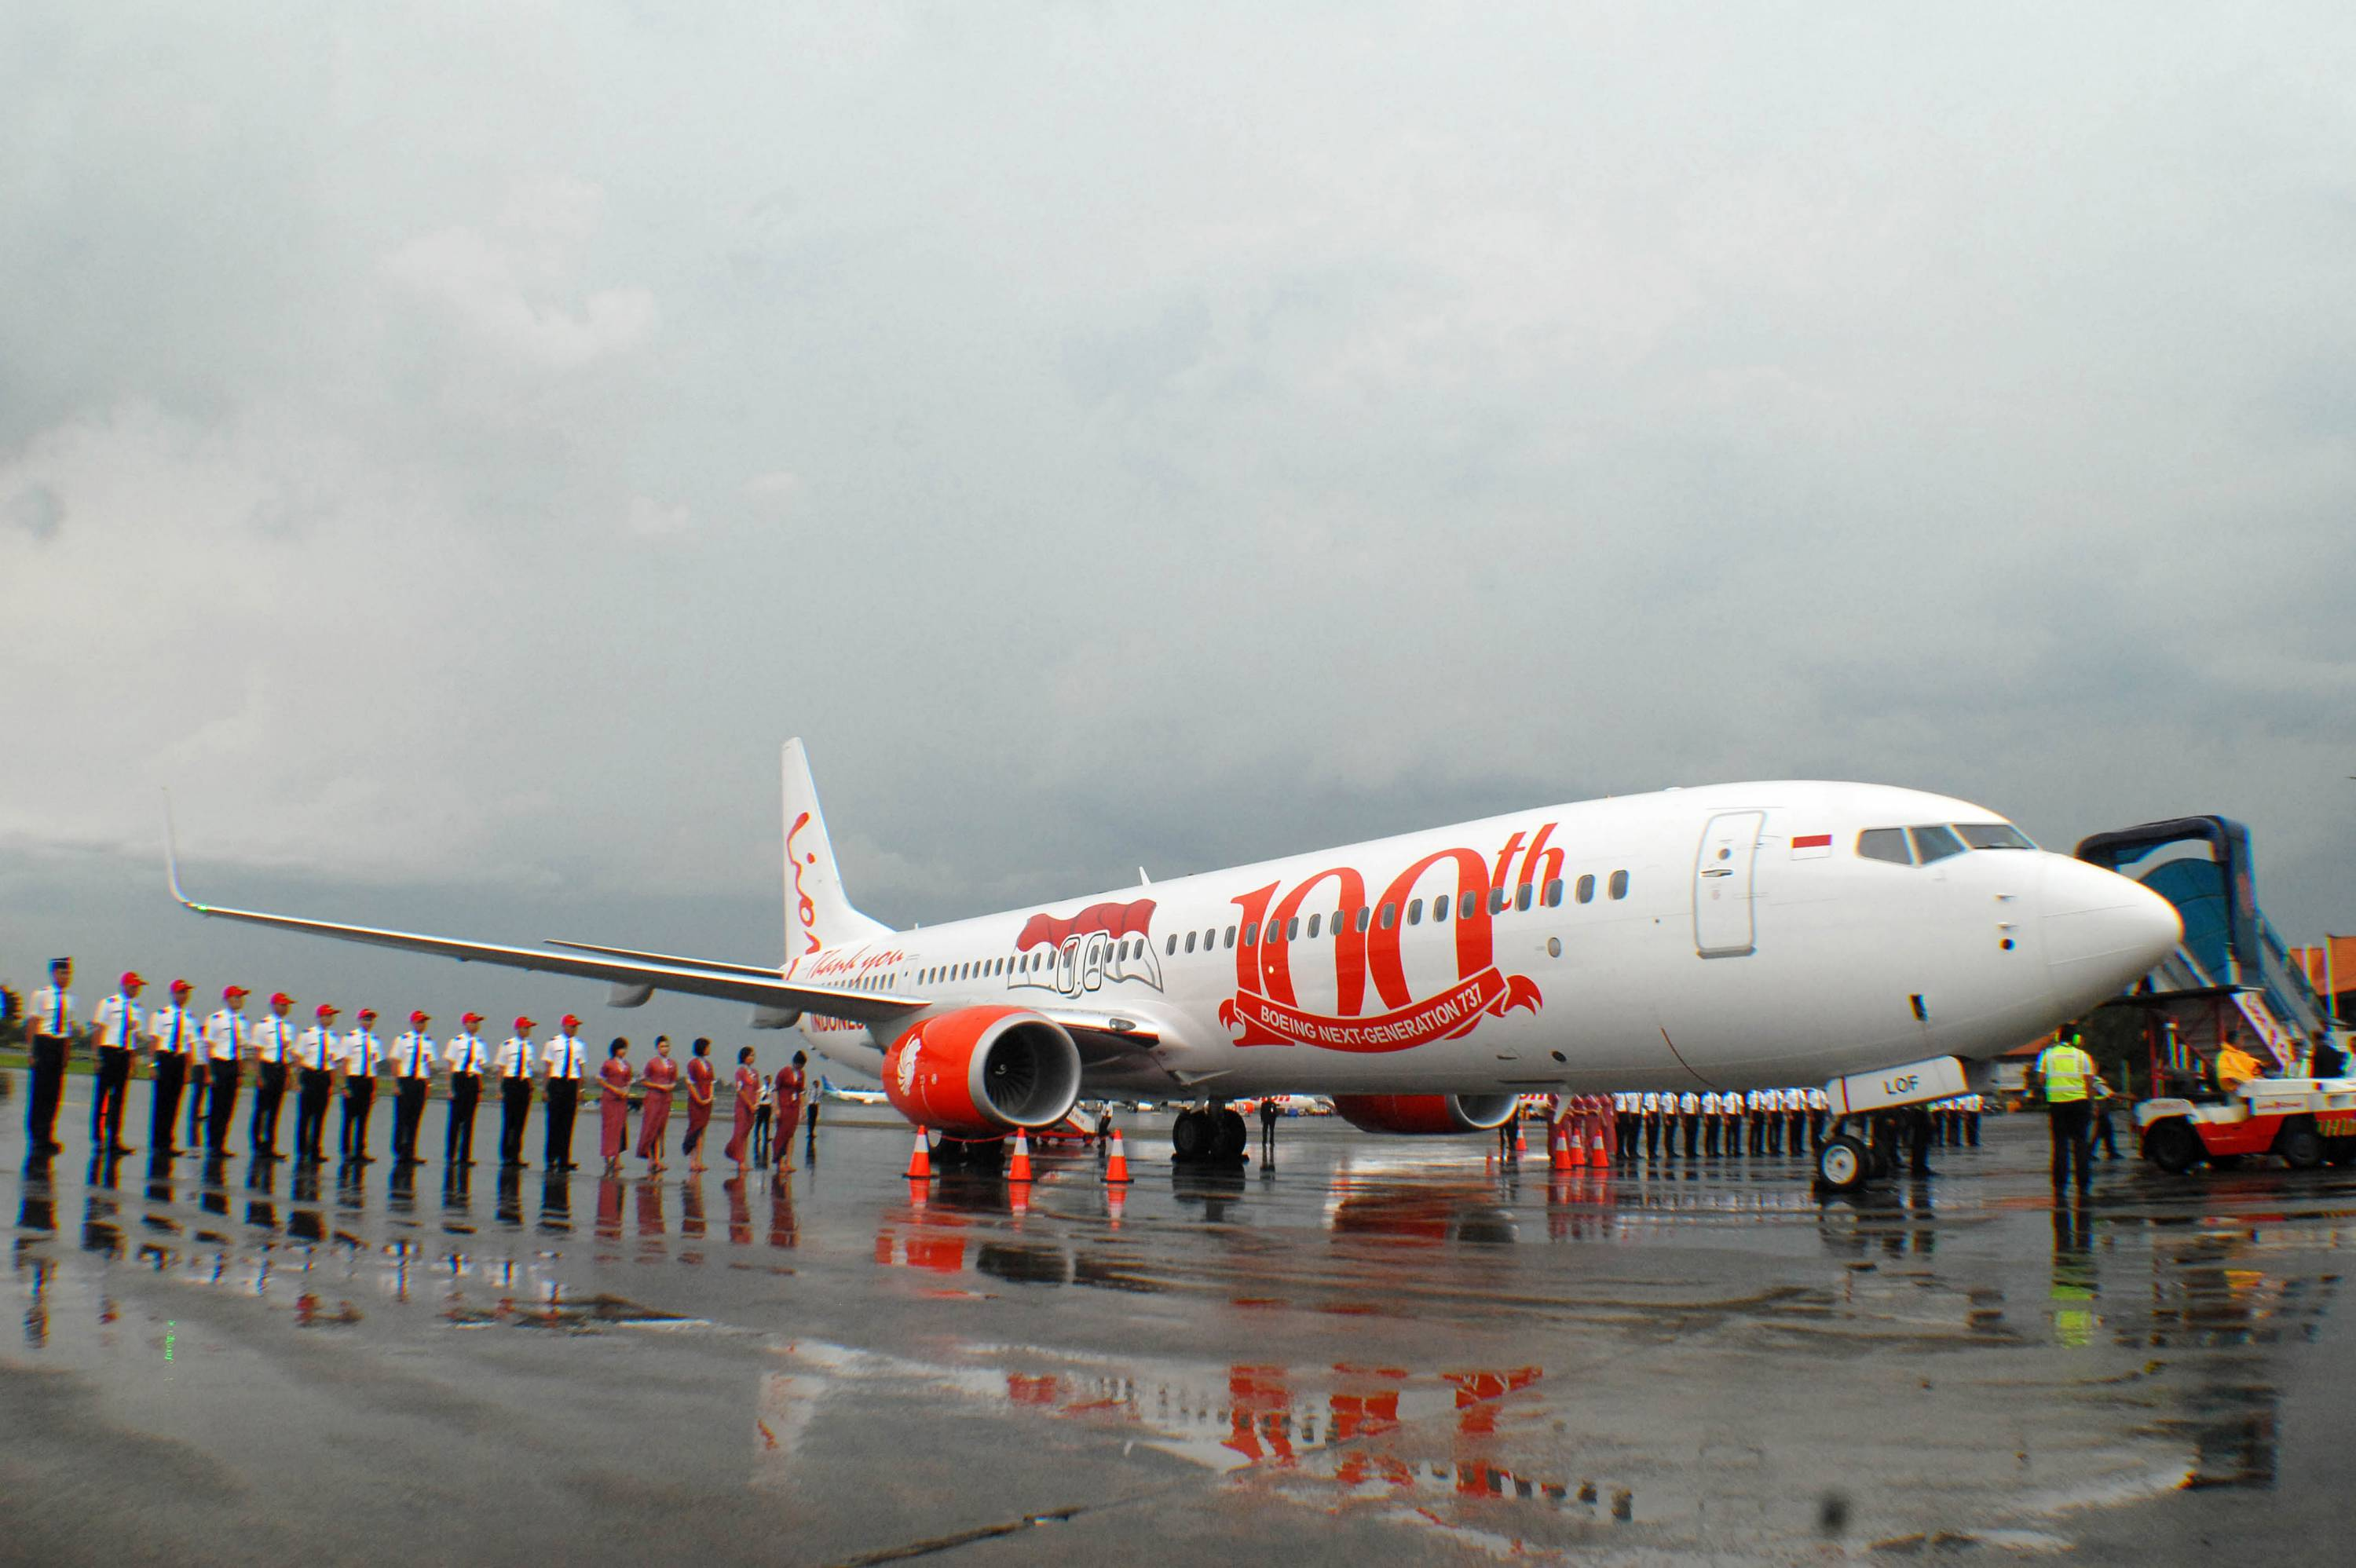 INDONESIA-AVIATION-LION AIR-BOEING